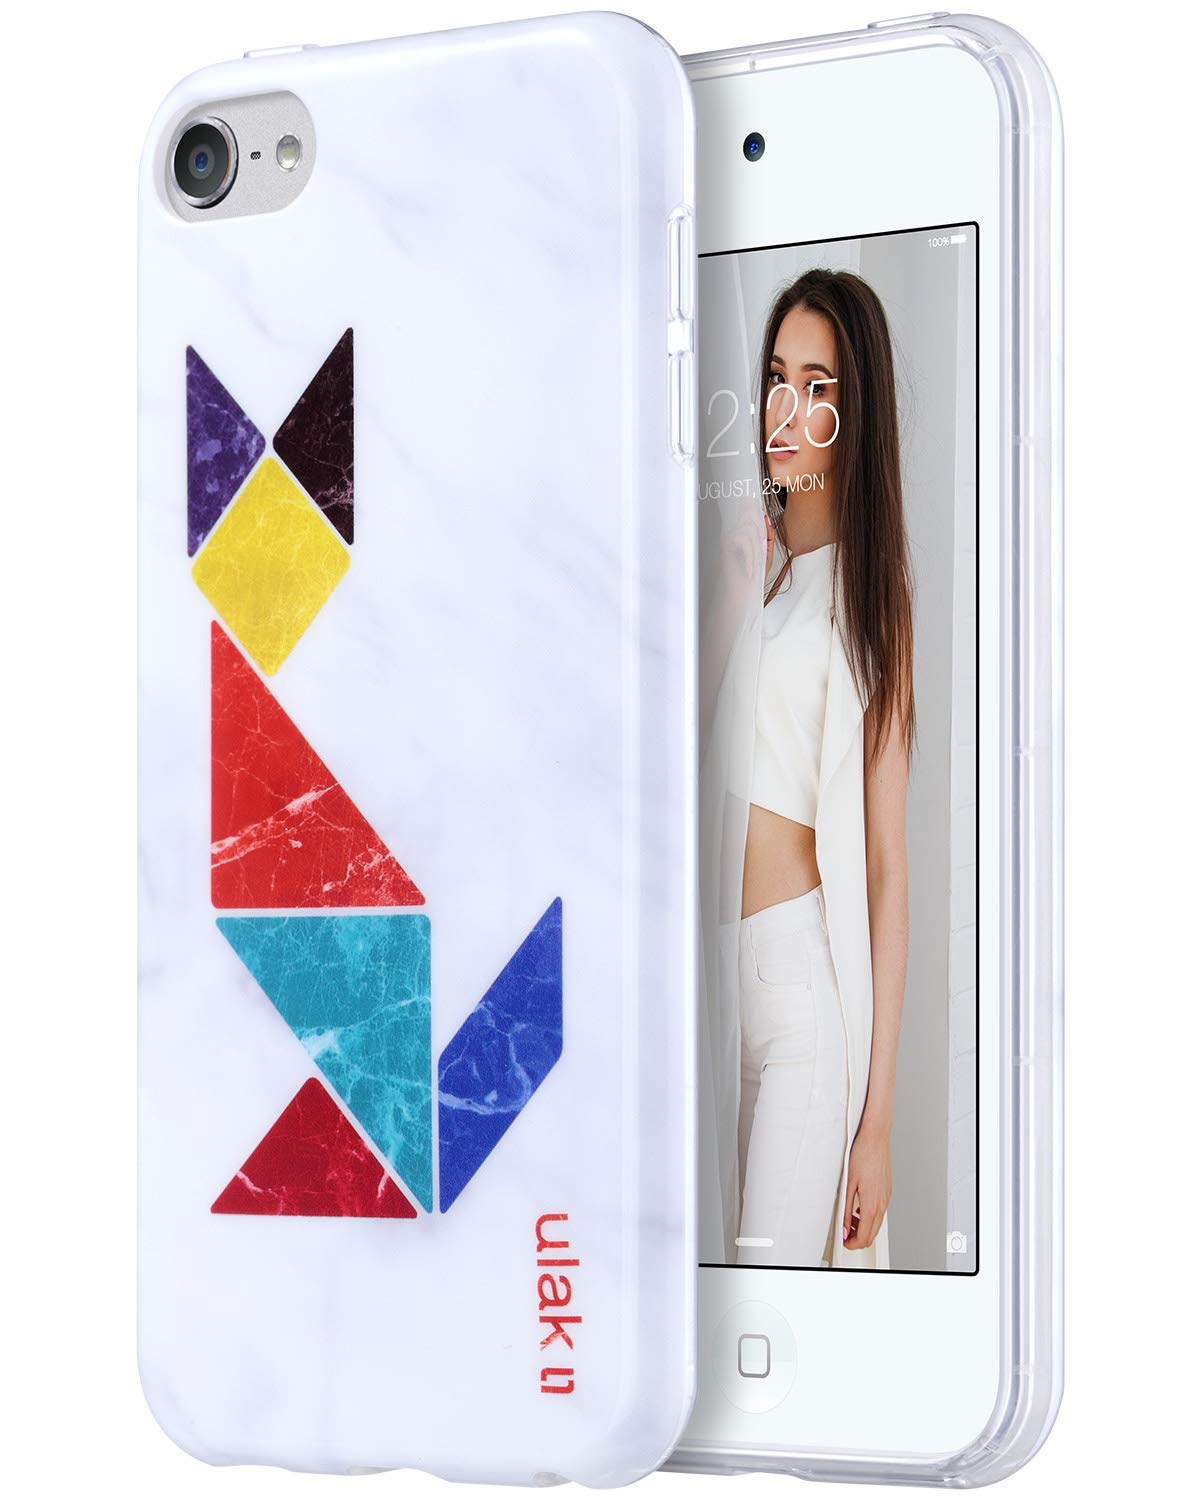 ULAK iPod Touch 7 Case, iPod Touch 6 Case, Slim Fit Anti-Scratch Flexible Soft TPU Bumper PC Back Hybrid Protective Case for iPod Touch 5th/6th/7th Generation, Marble+Tangram Fox